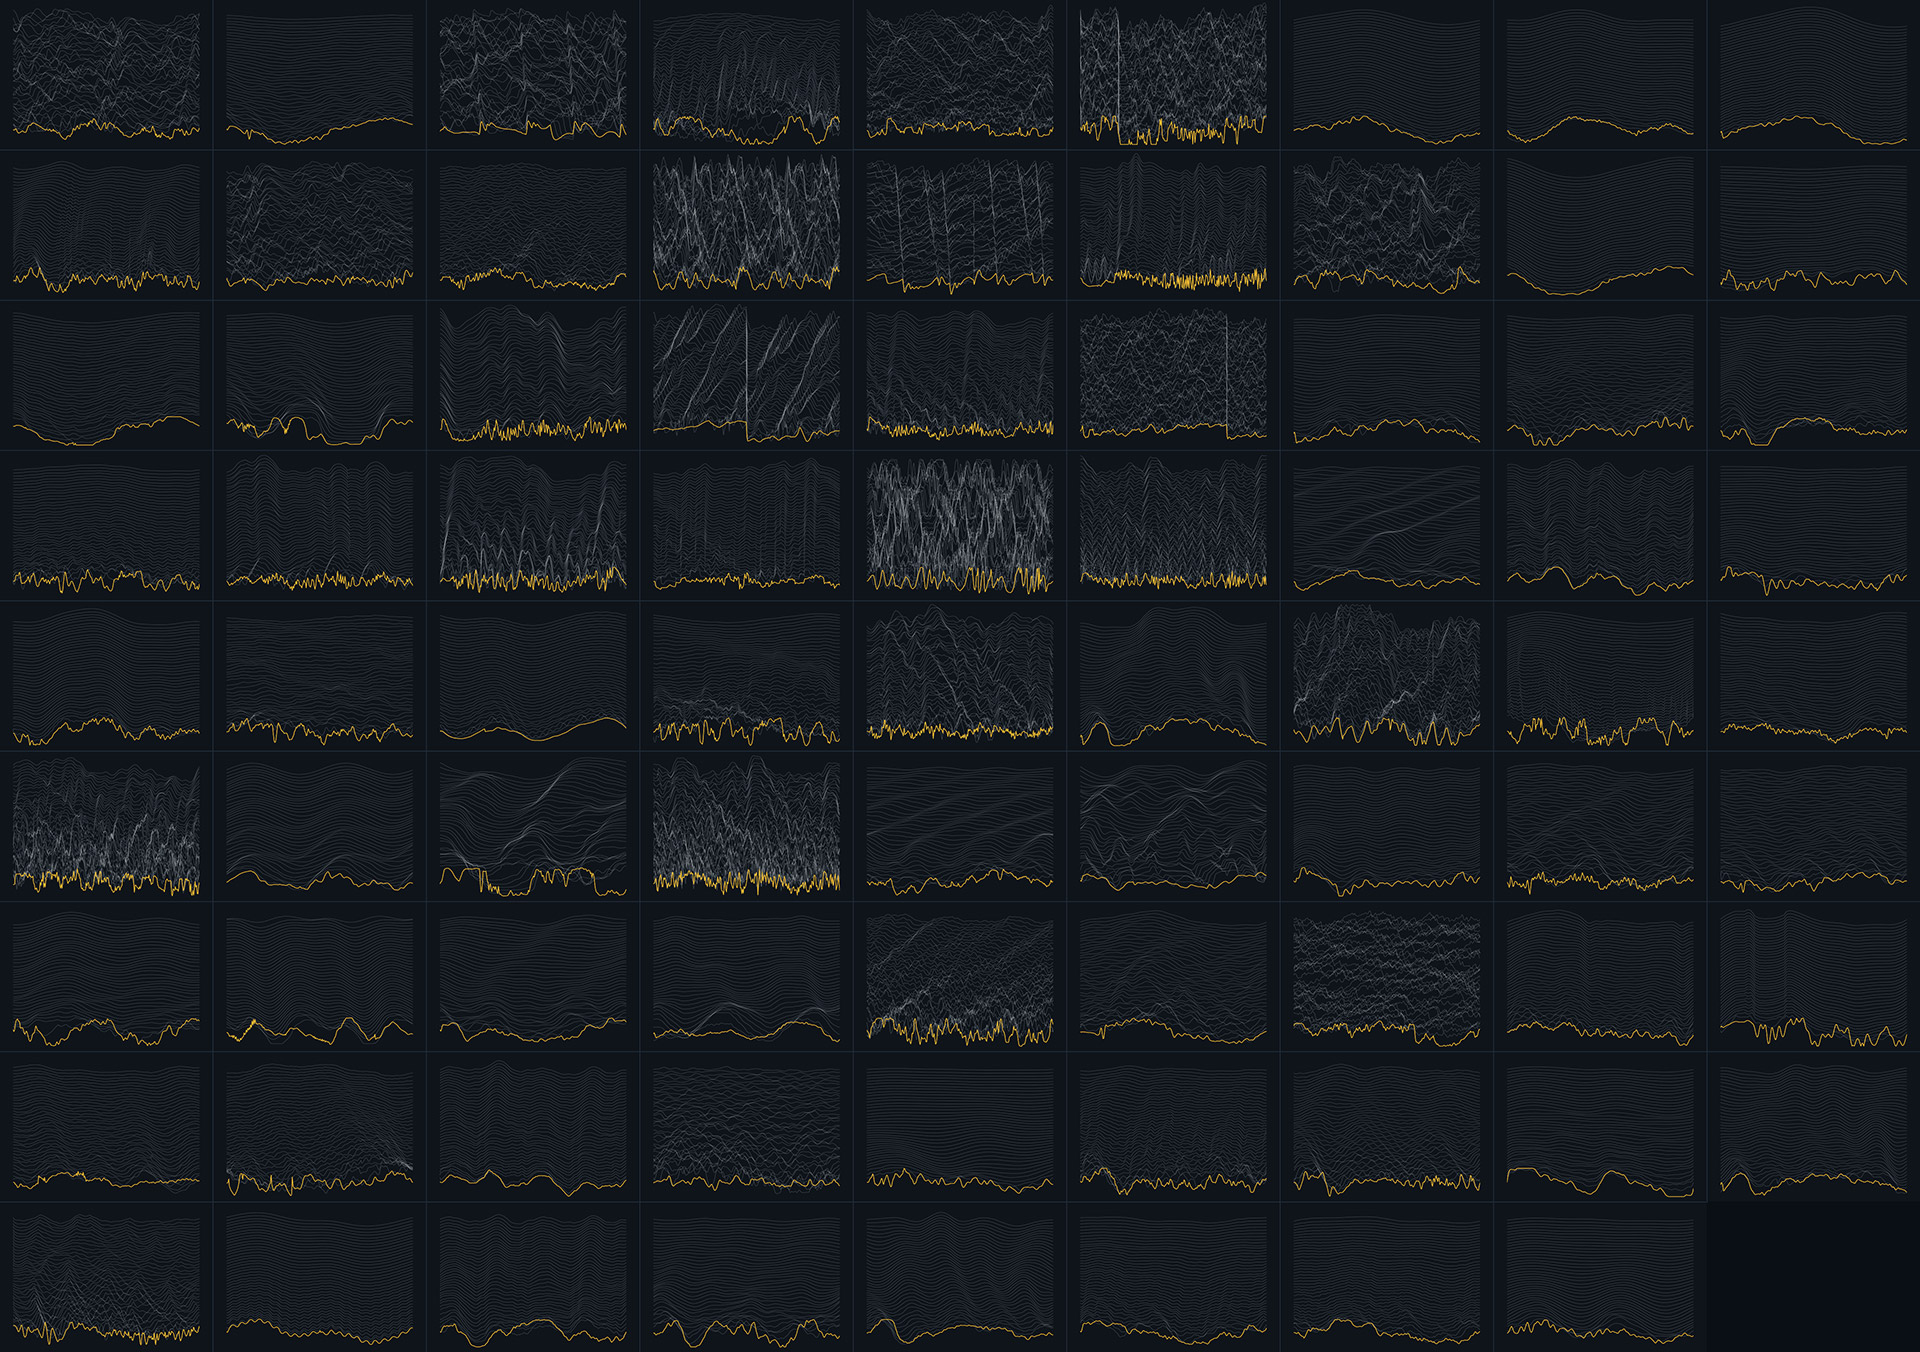 Collage of screenshots taken from Ableton Wavetable presetssynth's GUI showing custom made acoustic live instruments wavetables